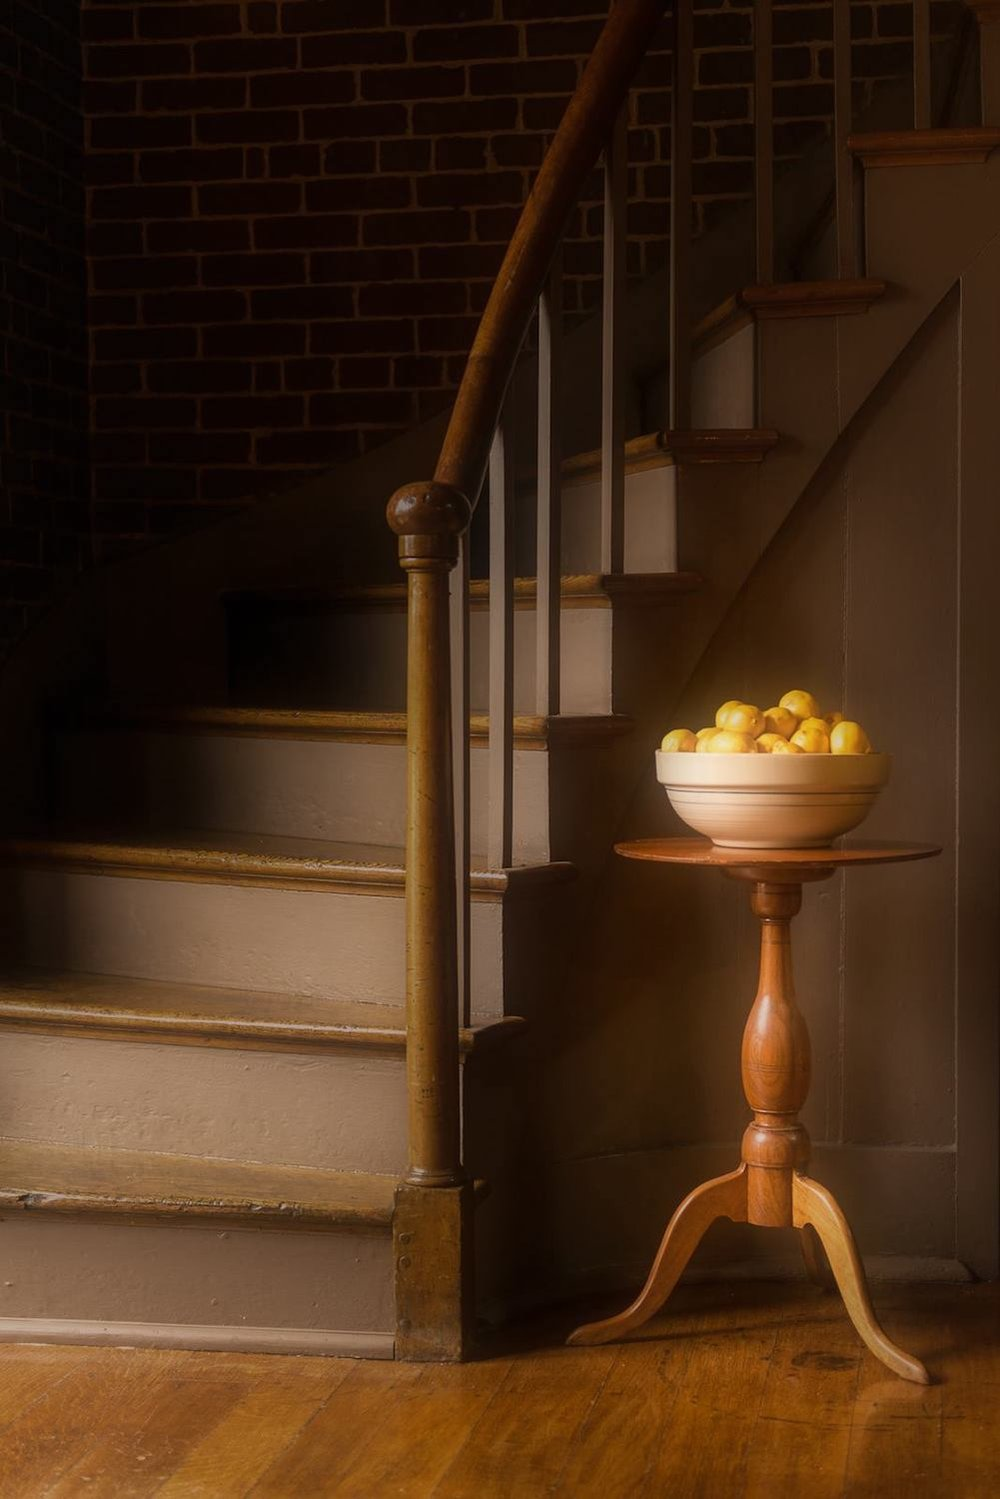 Shaker Village staircase with lemons